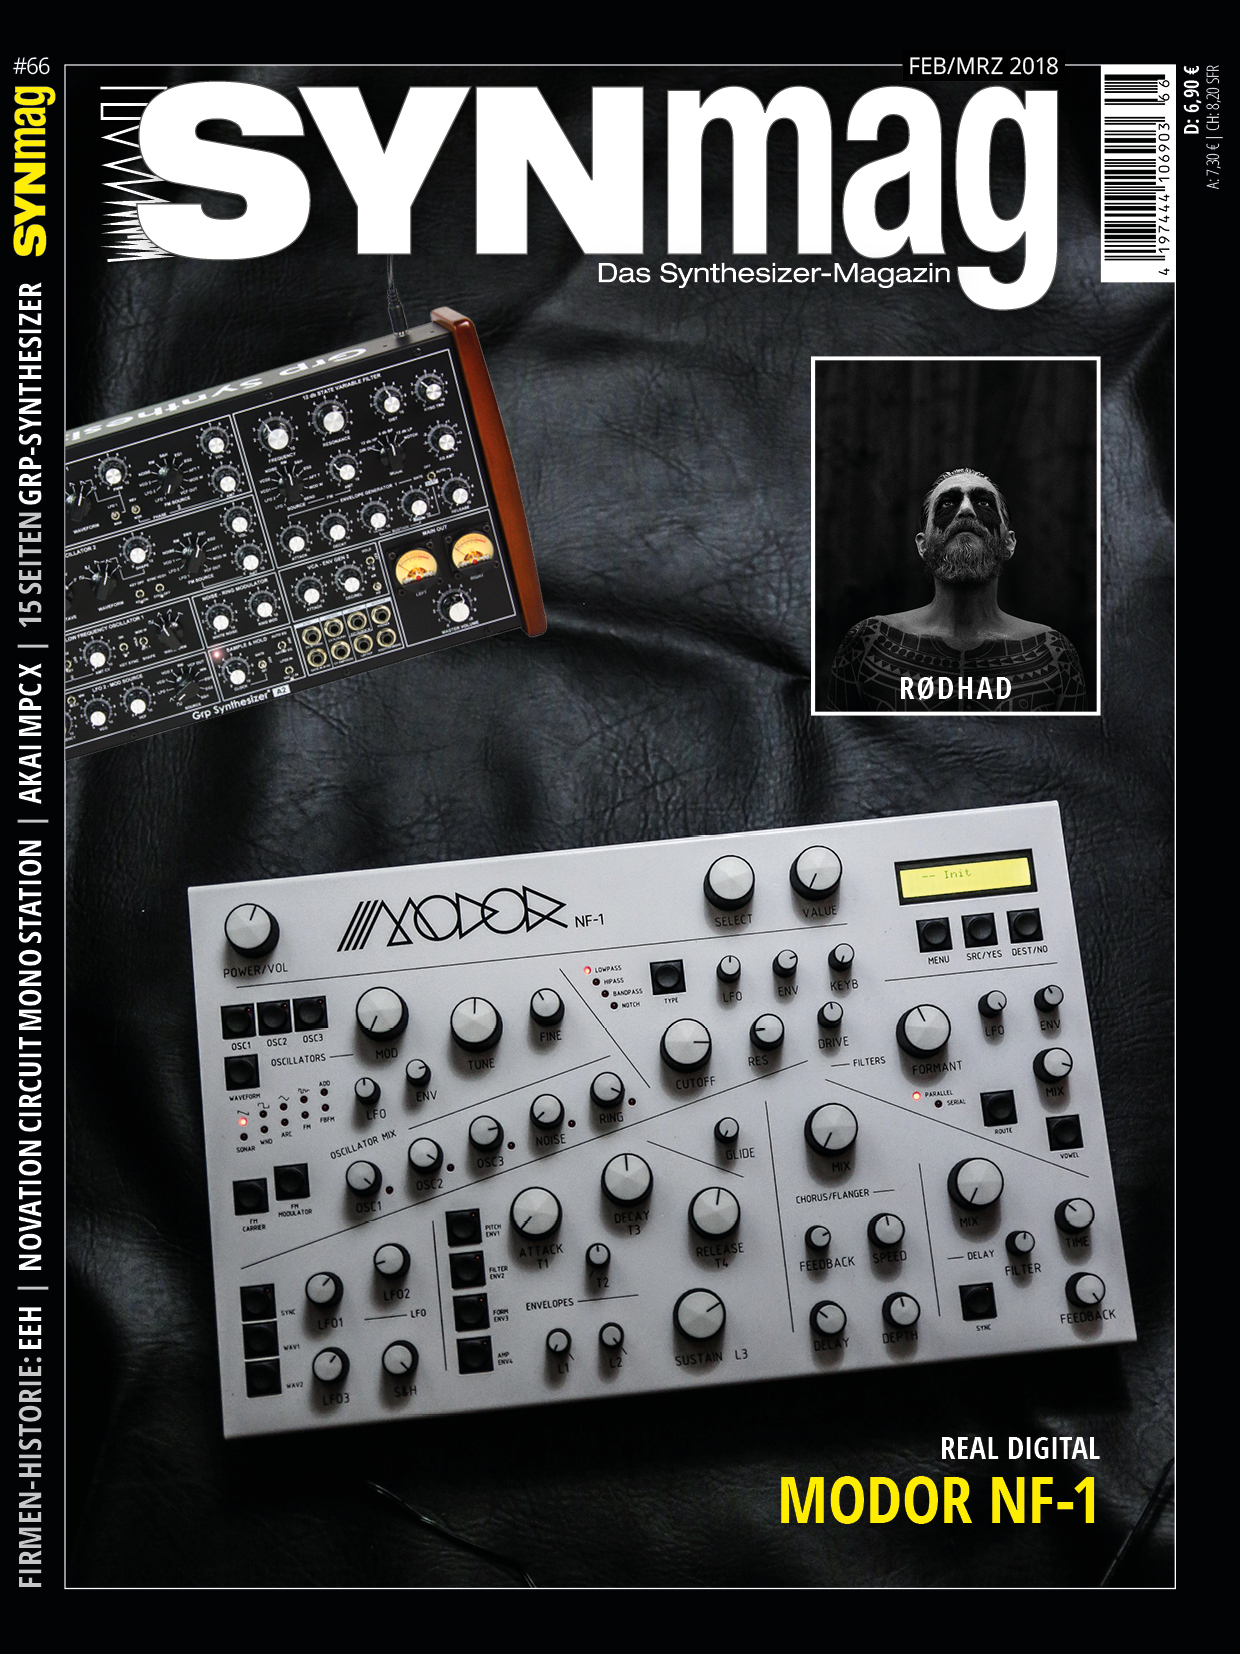 Synmag 66 Das Synthesizer-Magazin